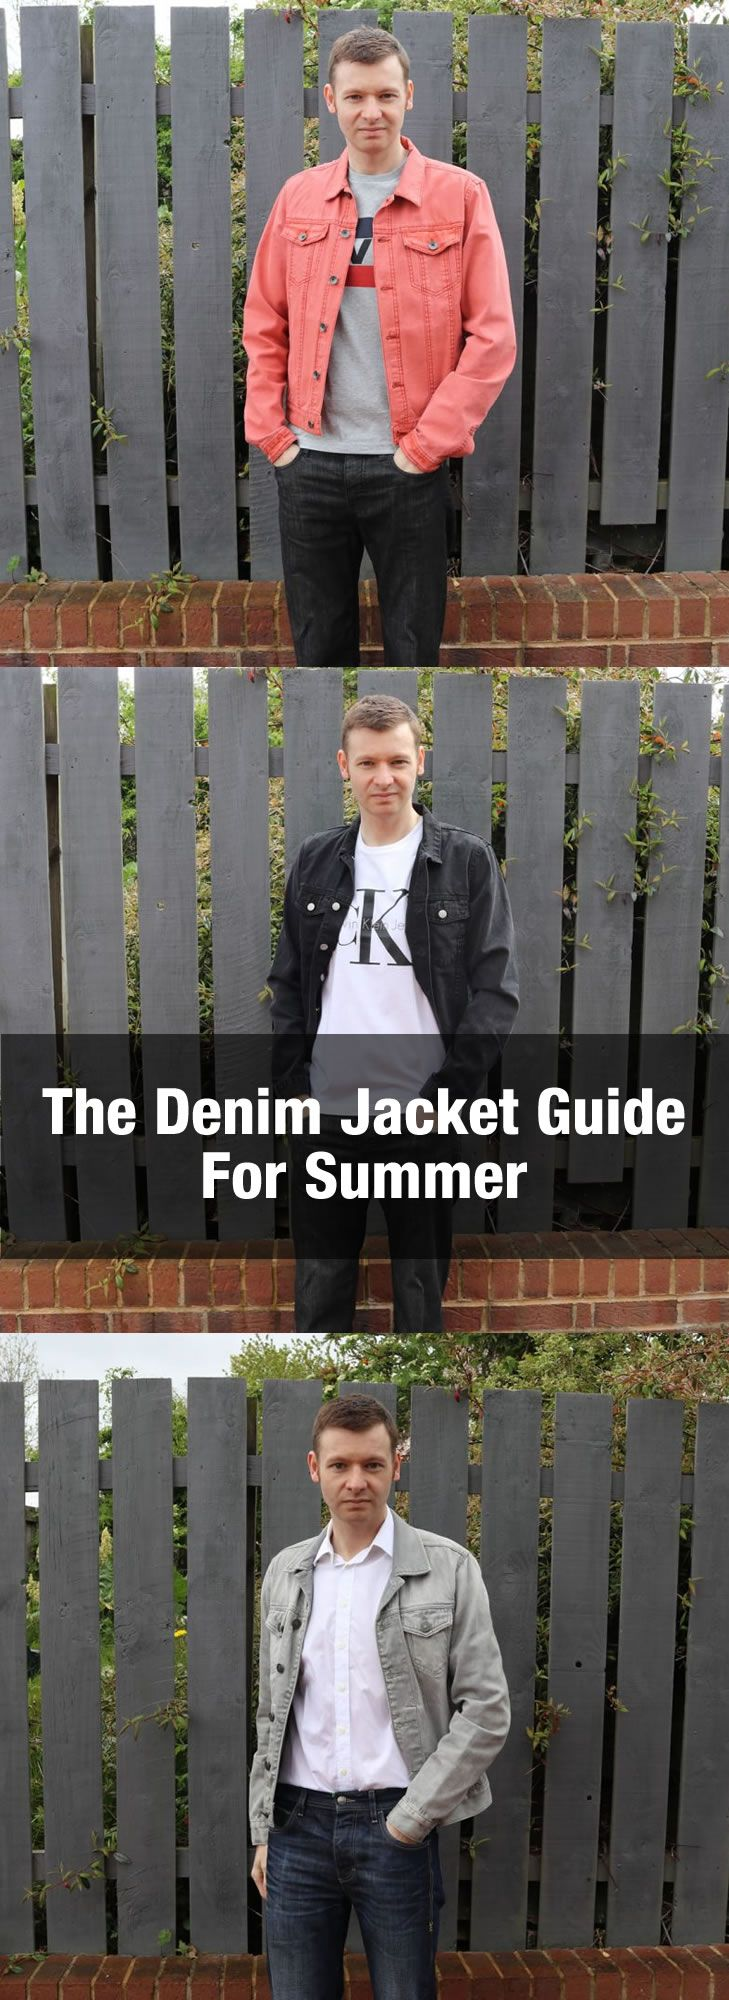 The Men's Denim Jacket Guide - Style Tips And What To Wear With A Jean Jacket. http://www.99wtf.net/trends/jackets-urban-fashion-men/